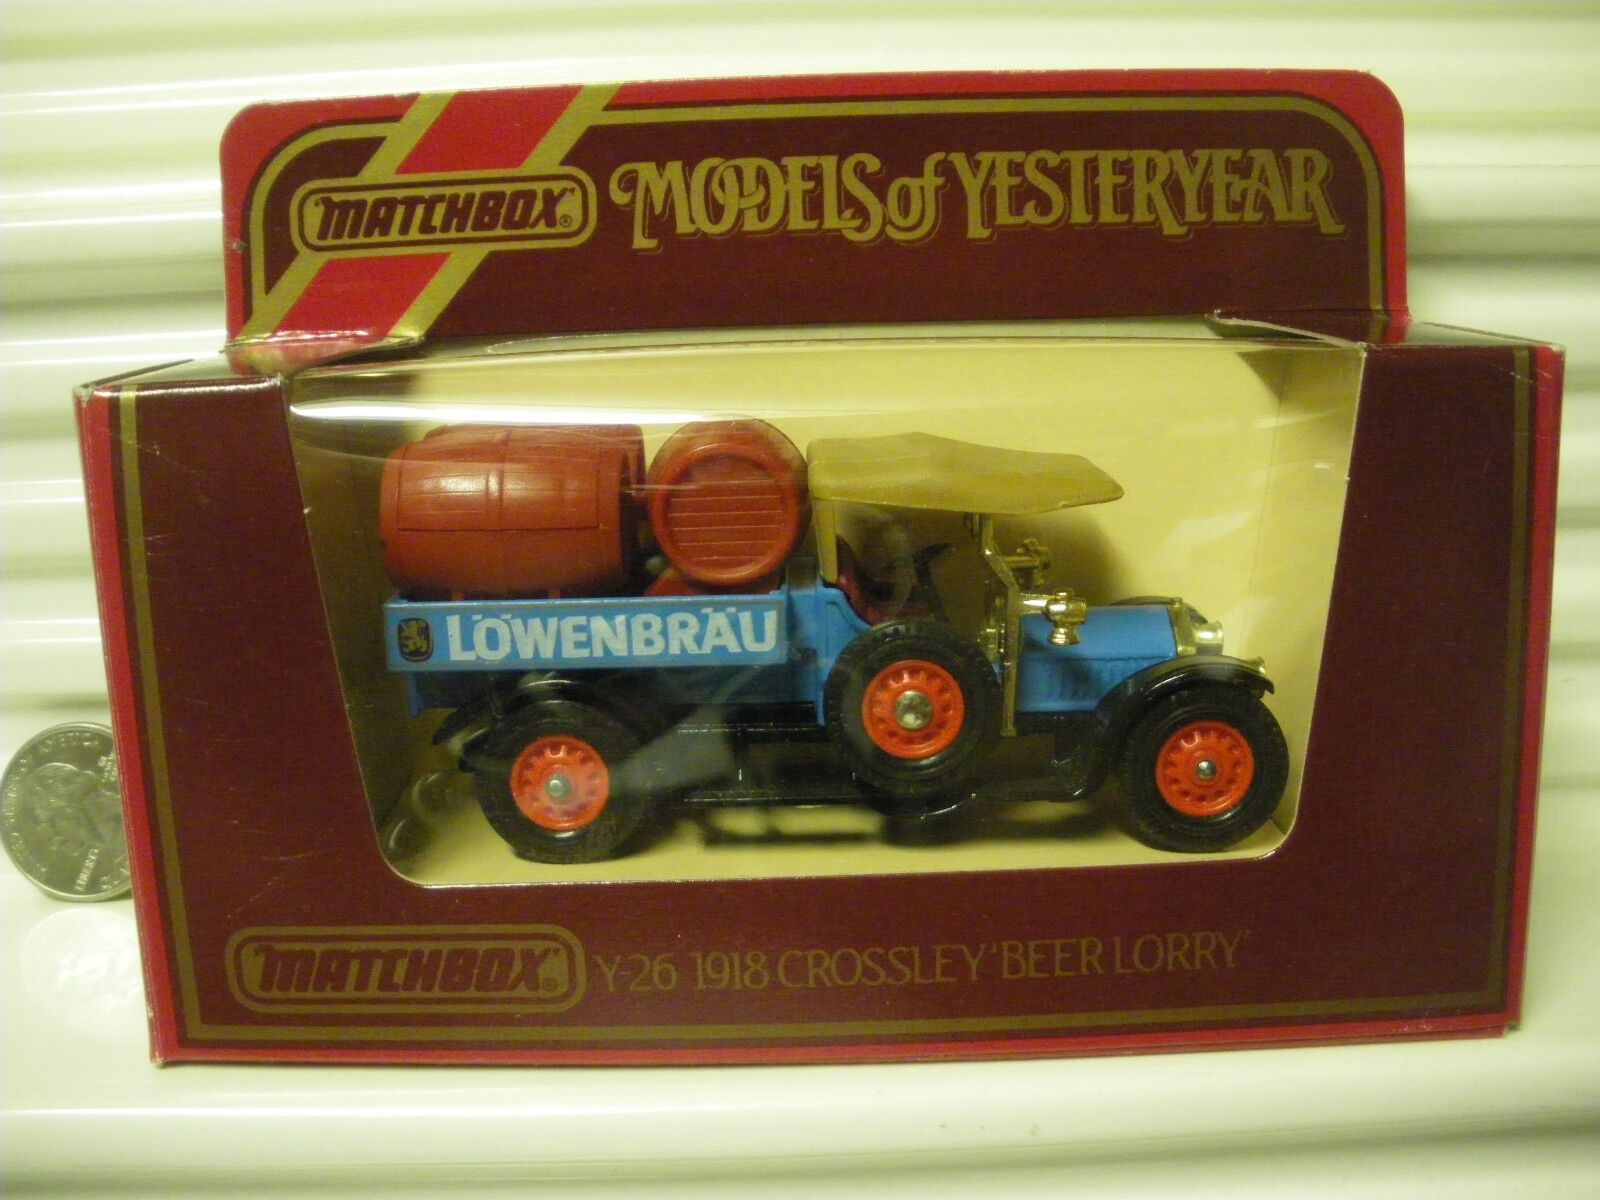 MATCHBOX MODELS OF YESTERYEAR Y26 LOWENBRAU DK RED BARRELS 1918 CROSSLEY NU BXD*